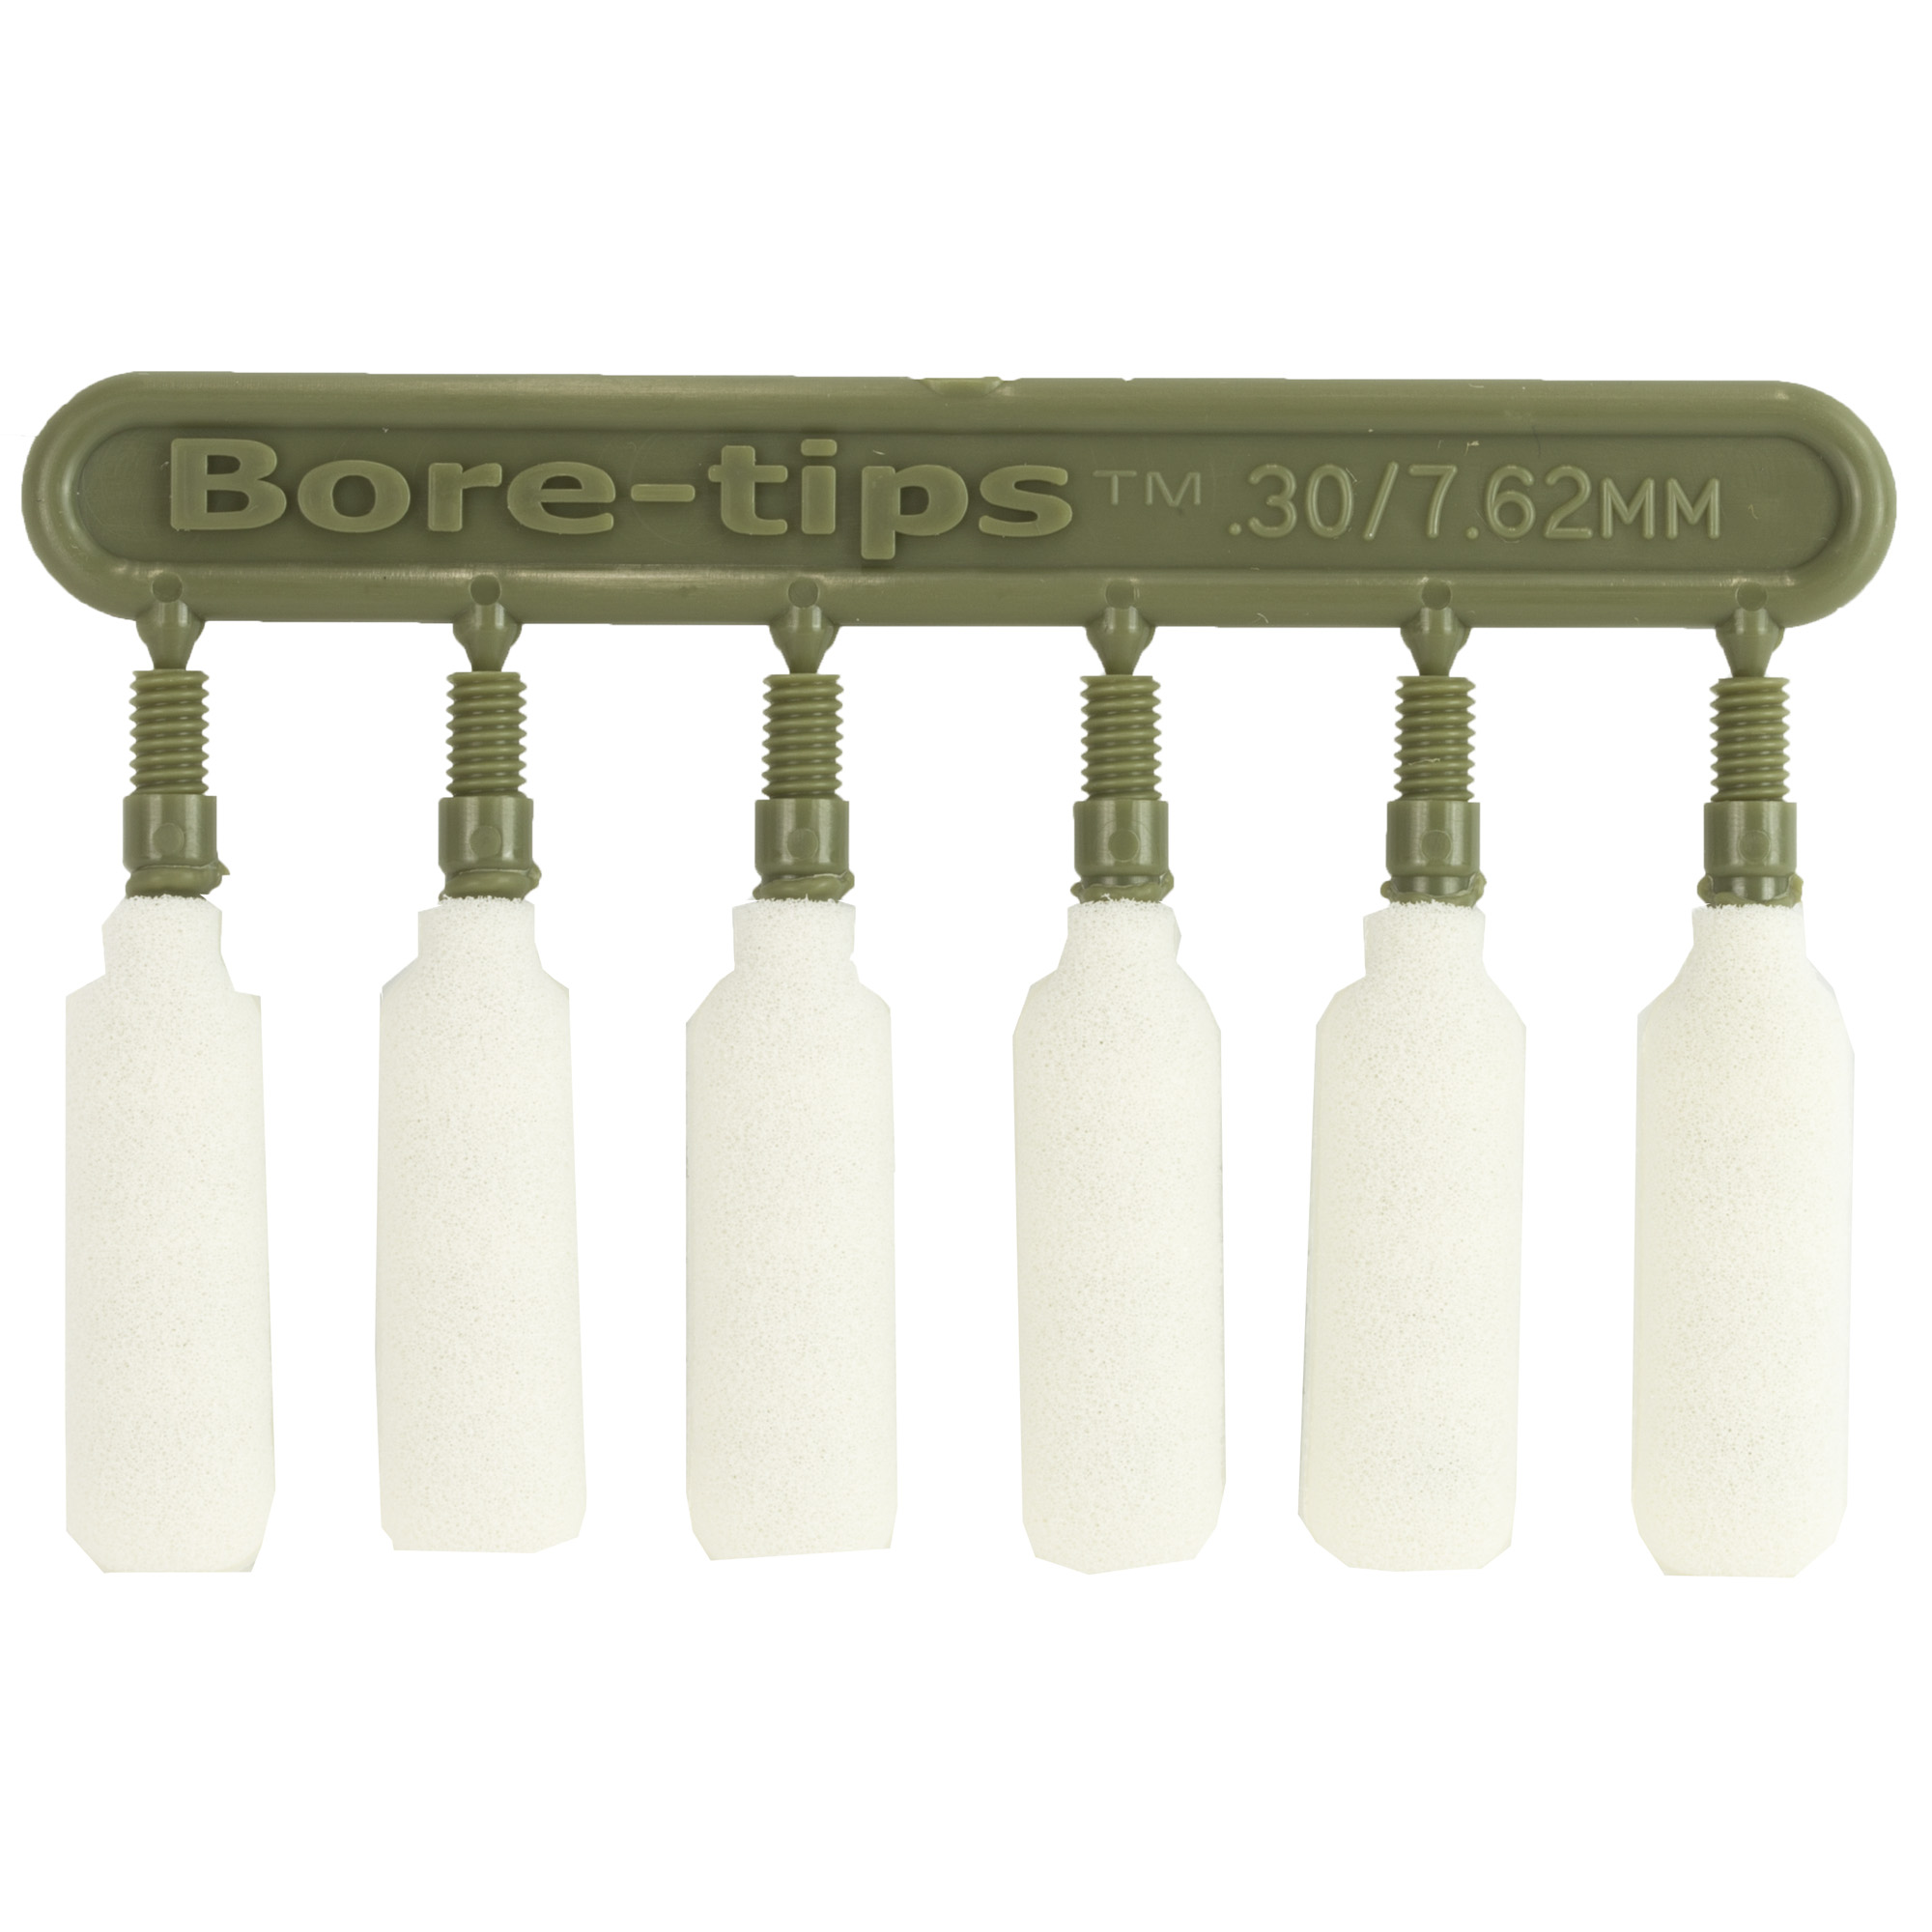 "Bore-tips are tough"" reusable foam tips engineered for 100% bore contact; spreading fluids more evenly than mops and patches without lint or fibers. Their non-abrasive foam allows them to be run in both directions"" while their absorbency requires less solvent/lubricant."